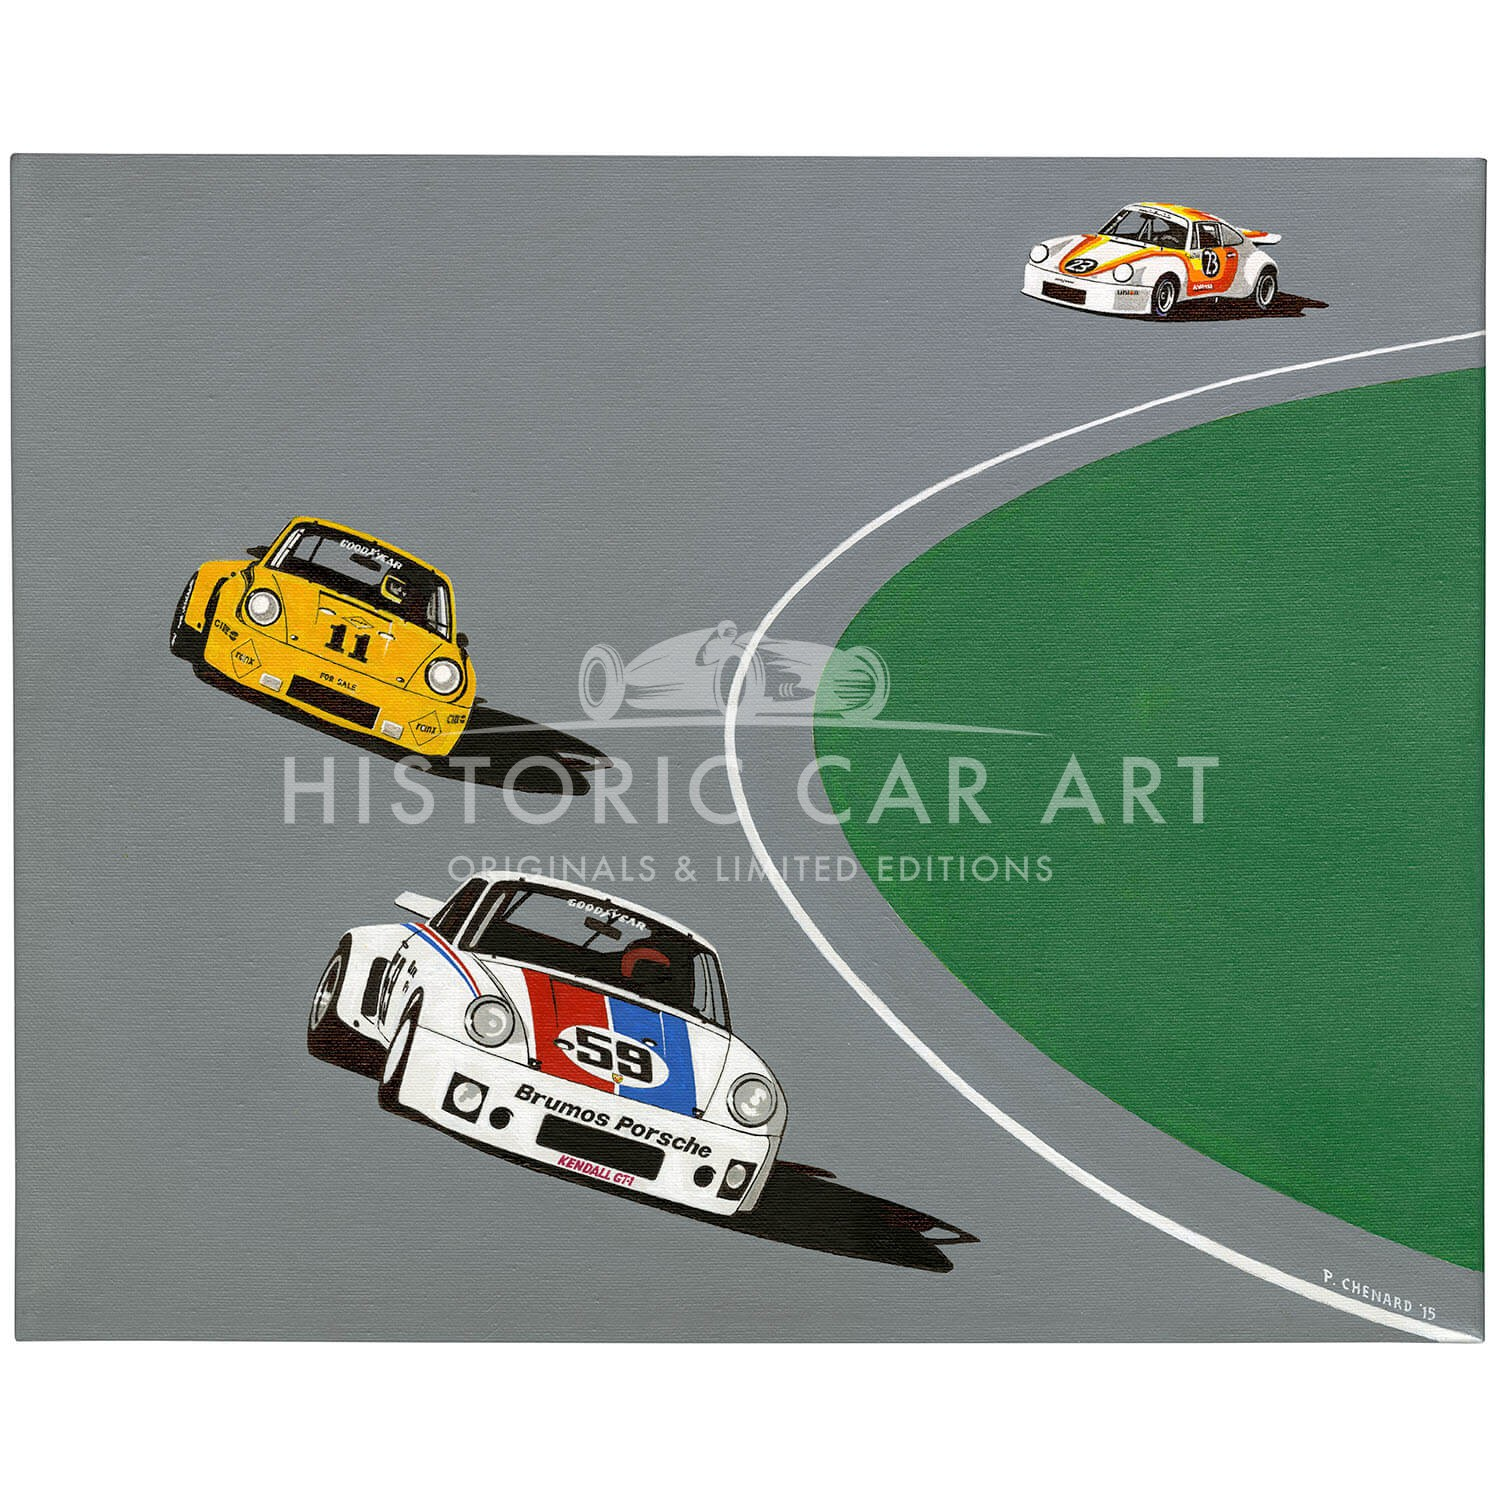 Porsche 1-2-3 Daytona 24hrs 1975 | Original Art